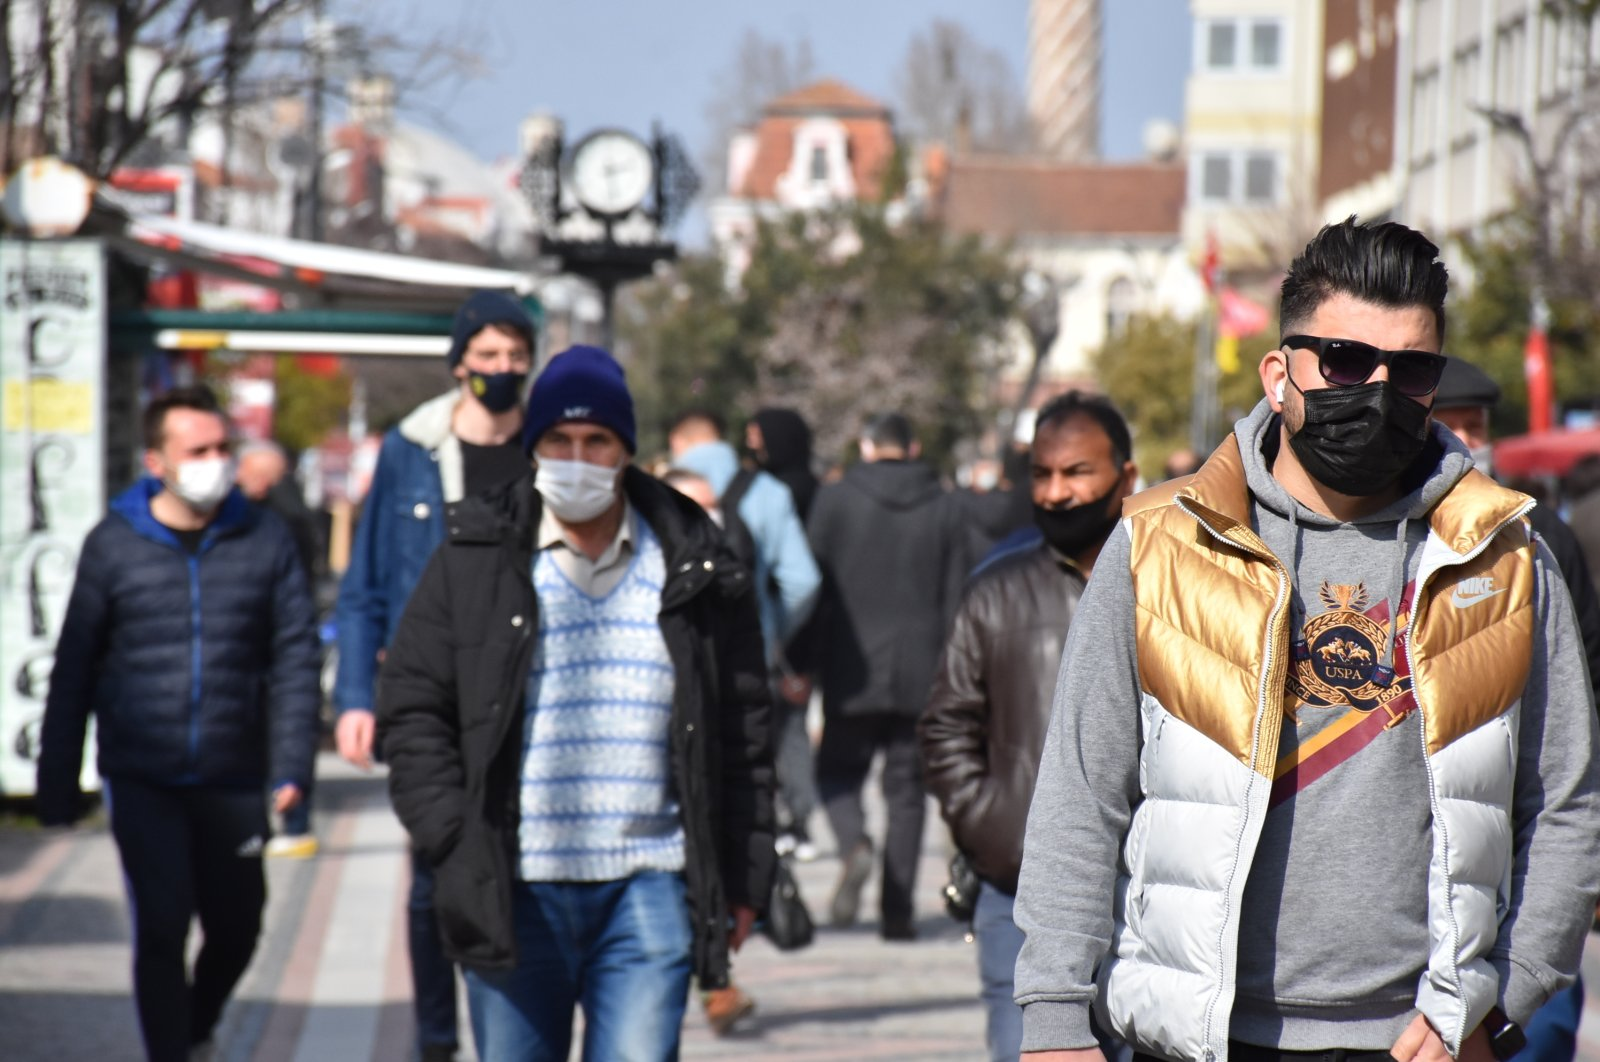 People wearing protective masks walk on a street in Edirne, northwestern Turkey, Feb. 25, 2021. (DHA PHOTO)